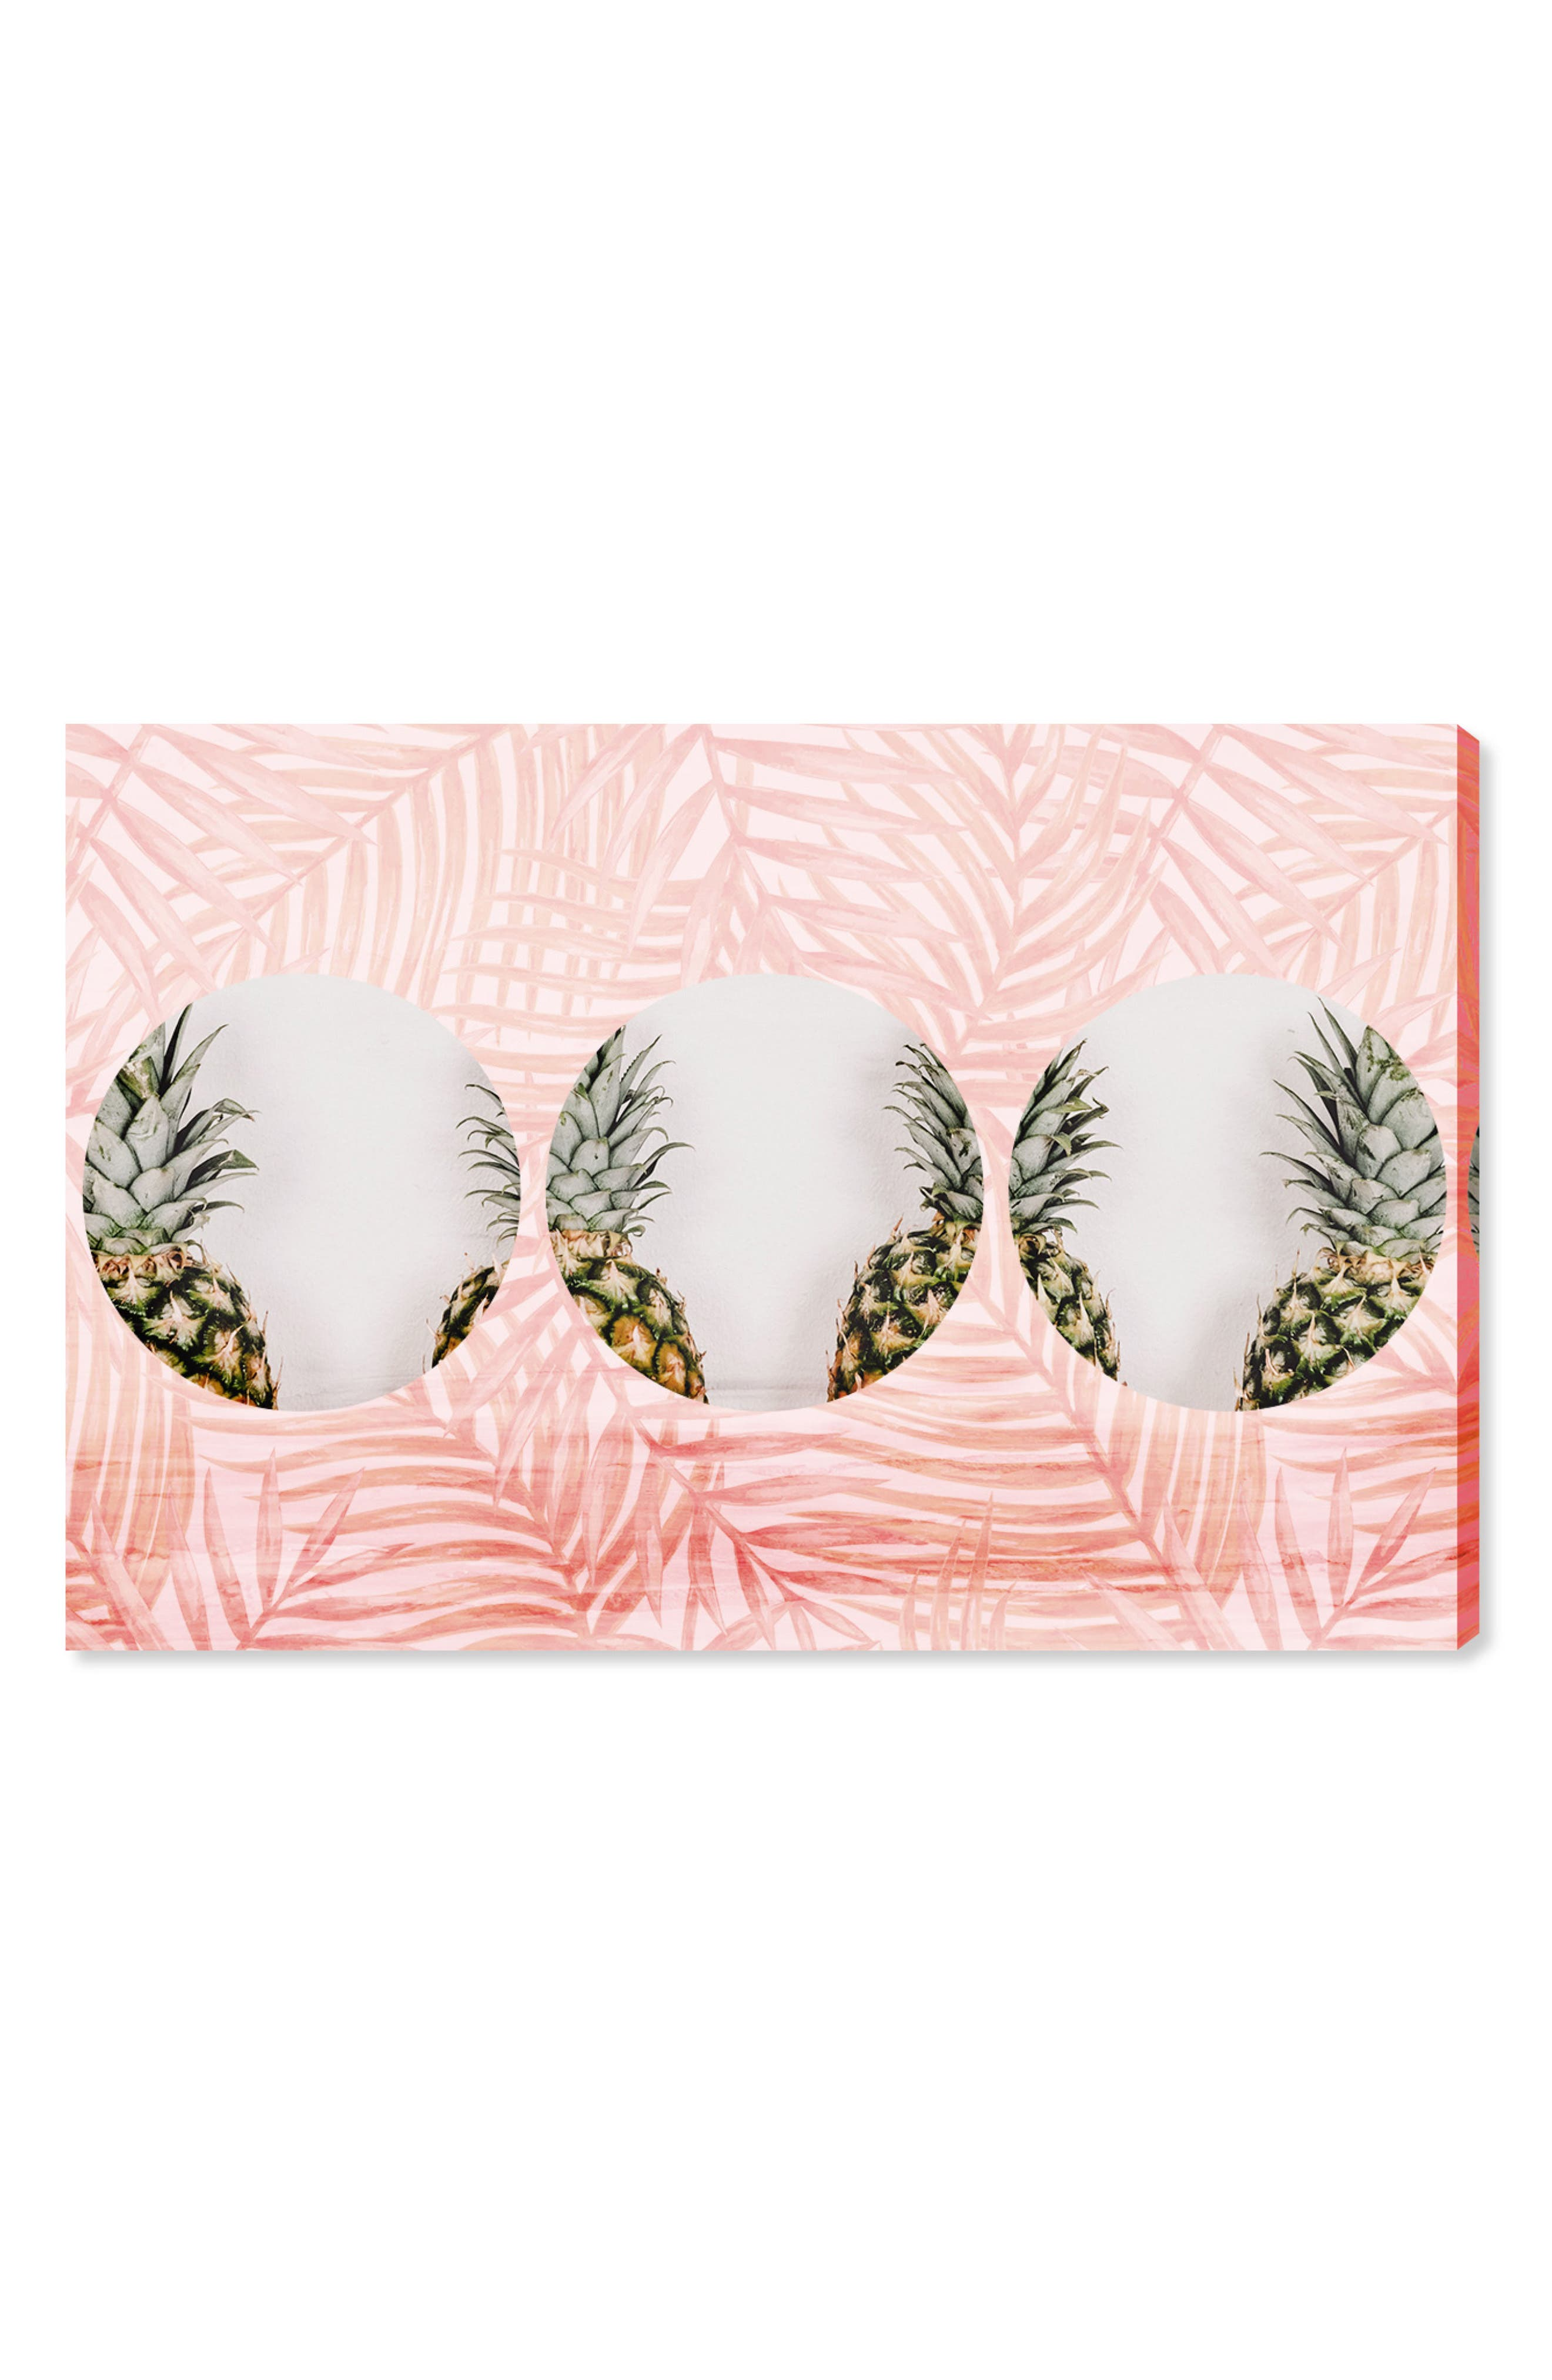 Main Image - Oliver Gal Pineapples & Leaves Canvas Wall Art